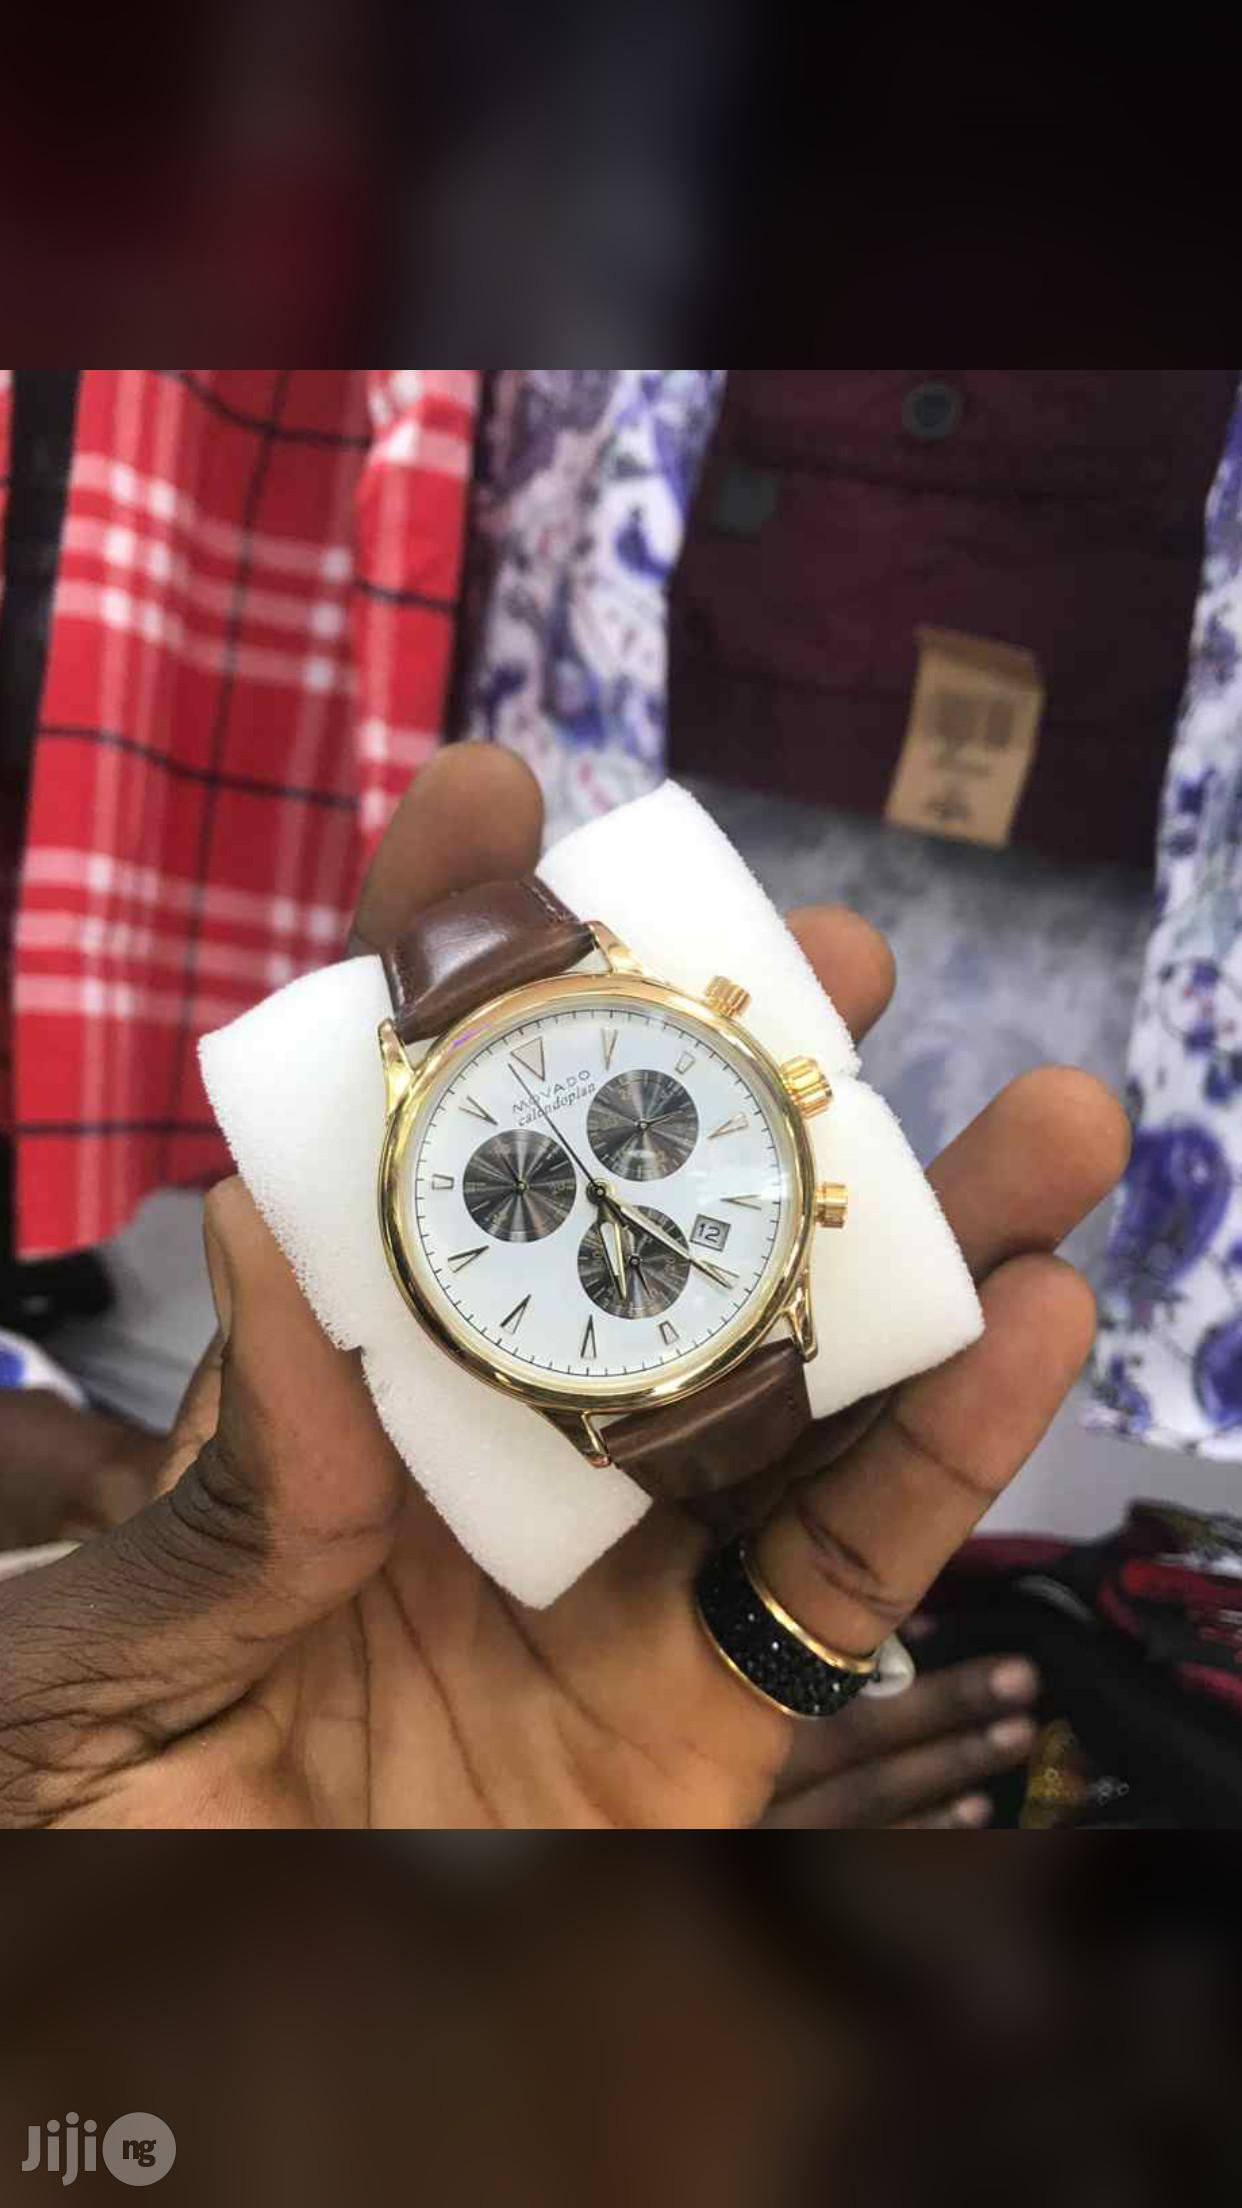 Movado Chronograph Genuine Leather Strap Watch | Watches for sale in Surulere, Lagos State, Nigeria